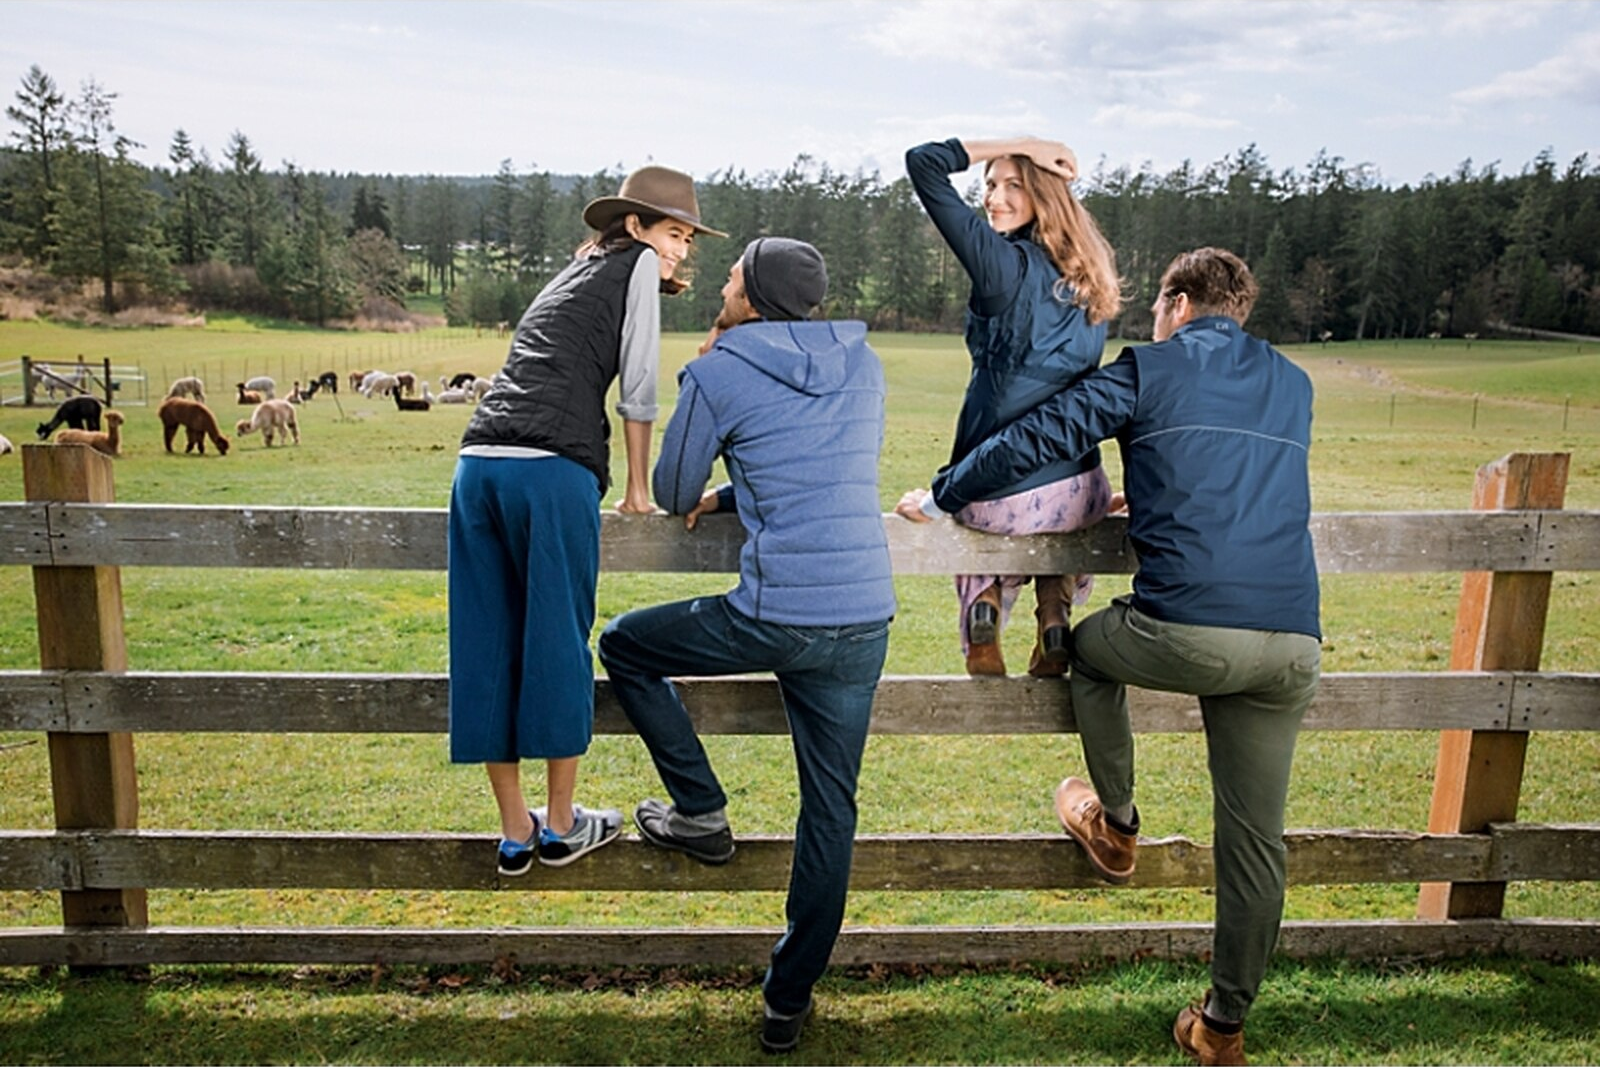 Group wearing Cutter and Buck Rainier Collection on a farm